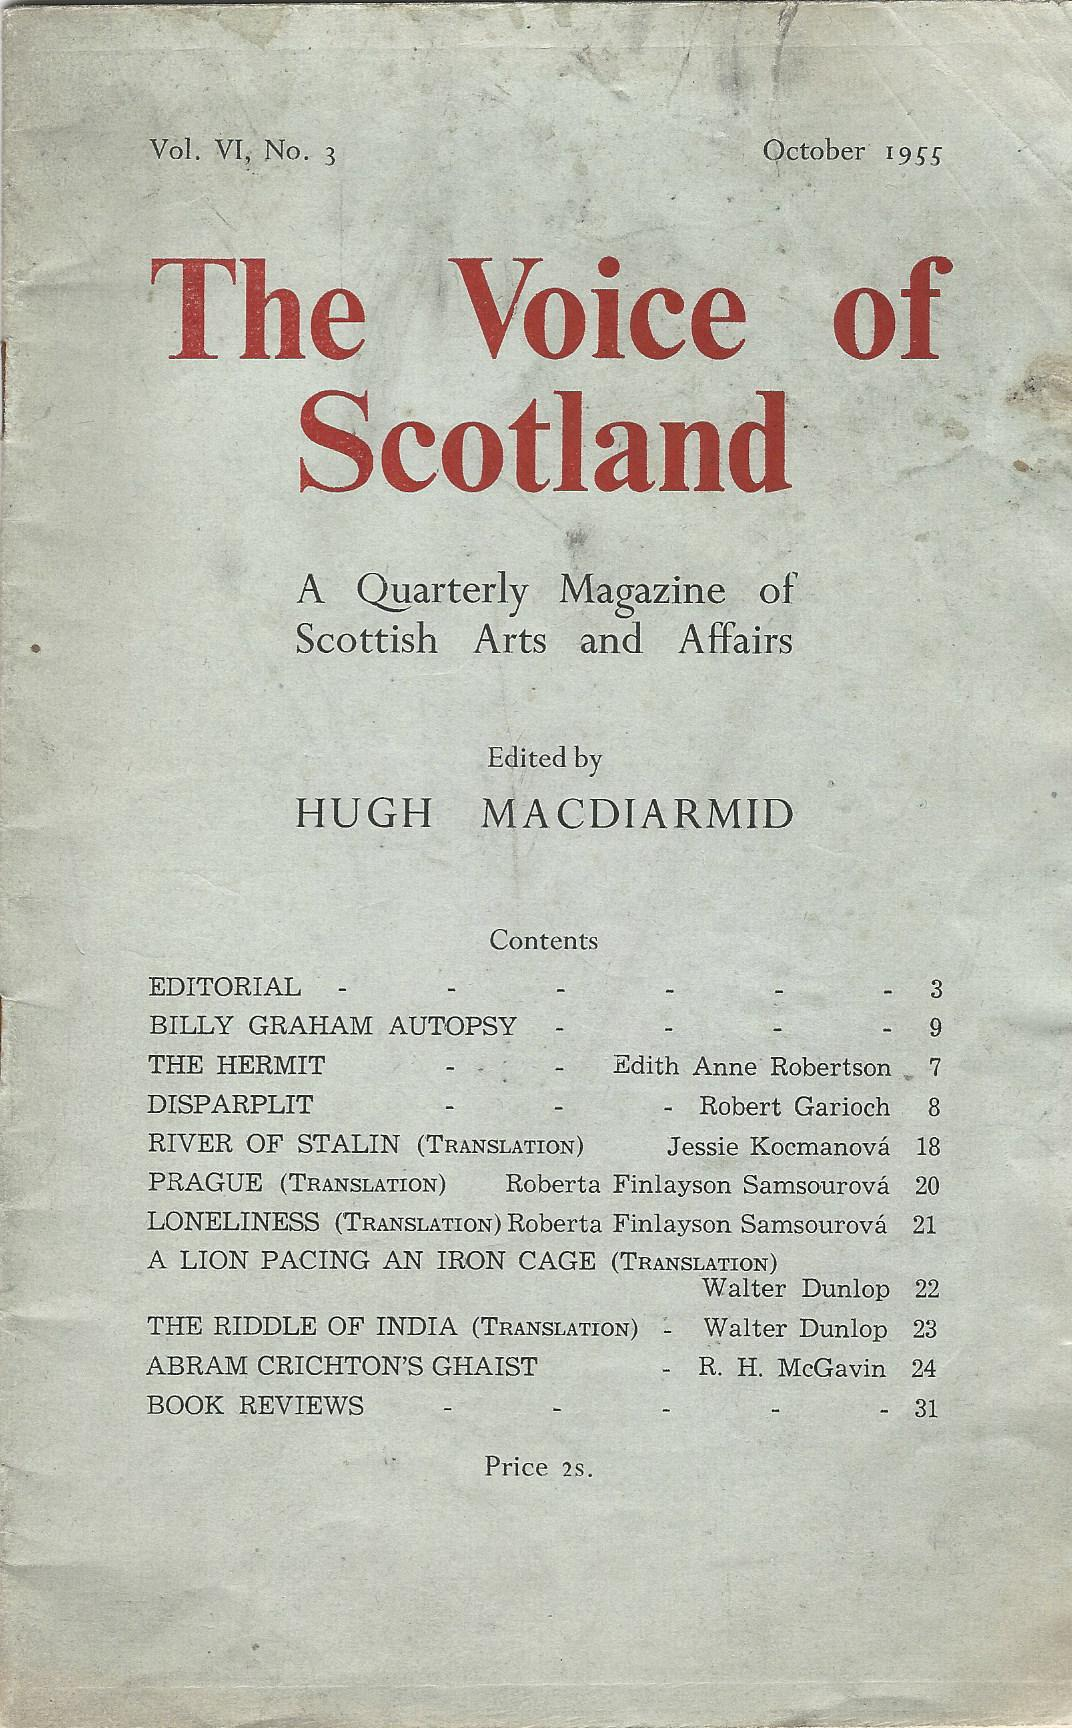 Image for The Voice of Scotland: A Quarterly Magazine of Scottish Arts and Affairs. Vol. VI. No. 3. October 1955